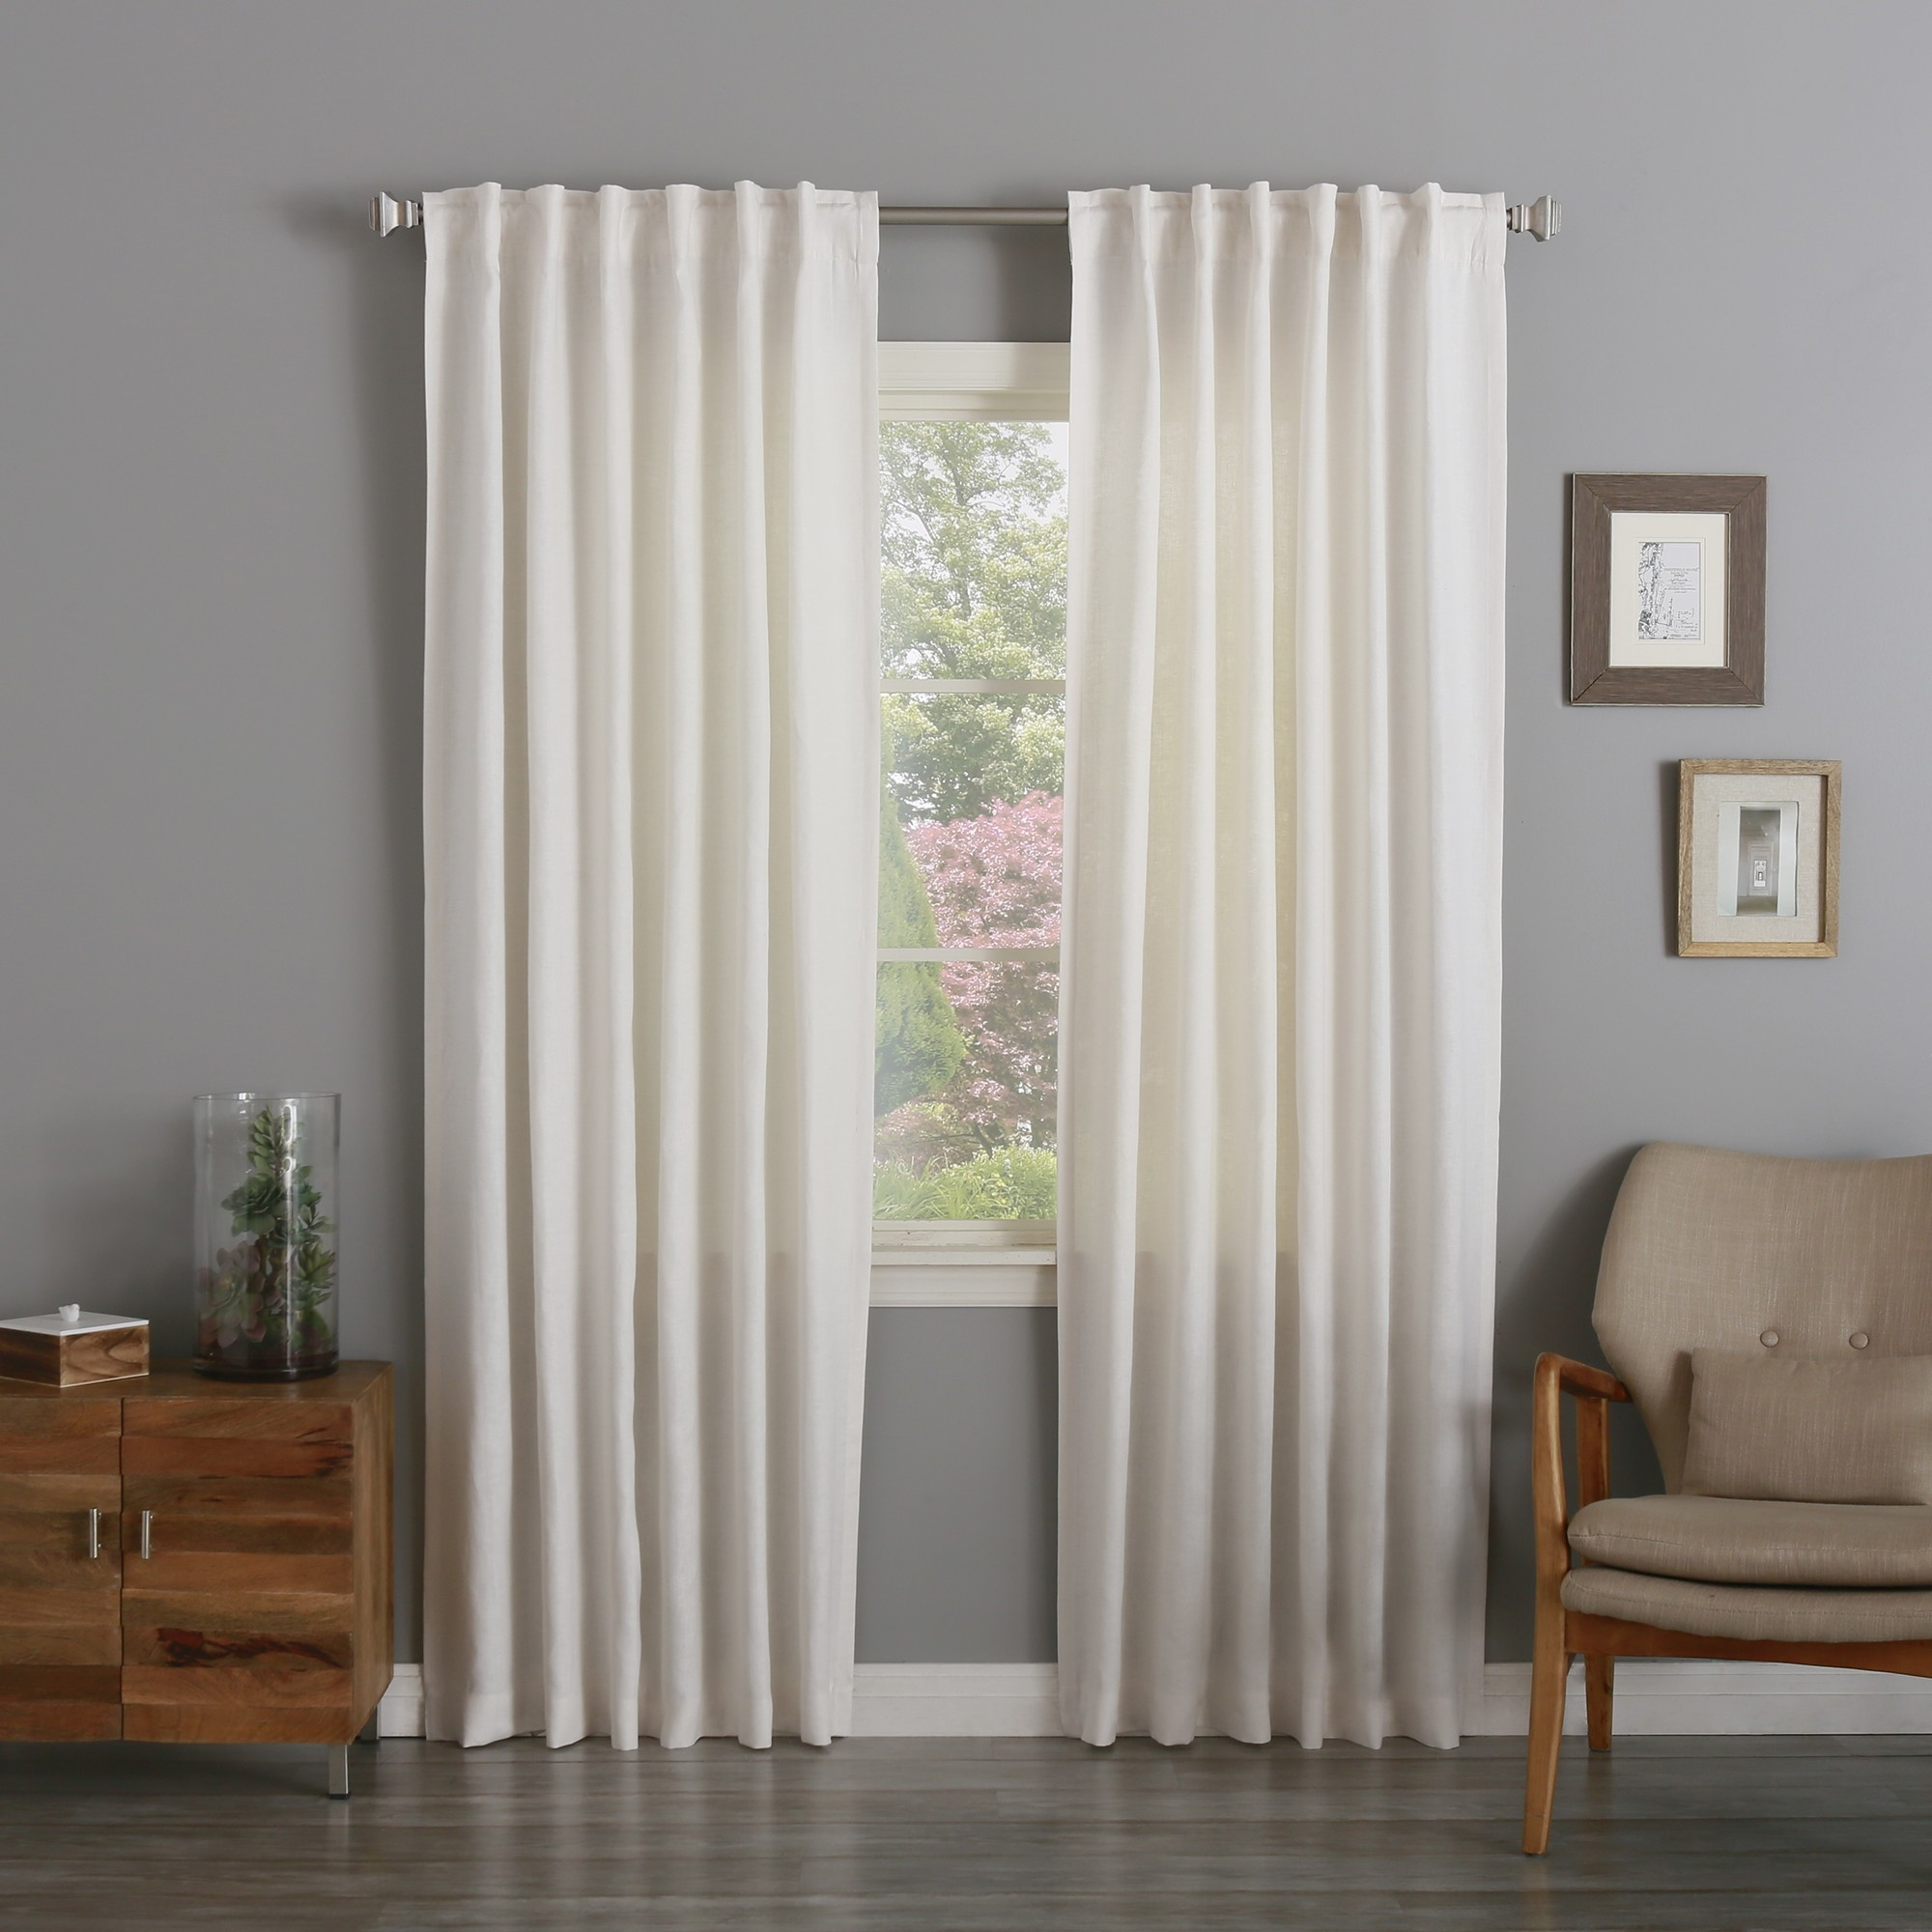 White Linen Curtains For Clean Looking House Teresasdesk Intended For Textured Linen Curtains (Image 15 of 15)